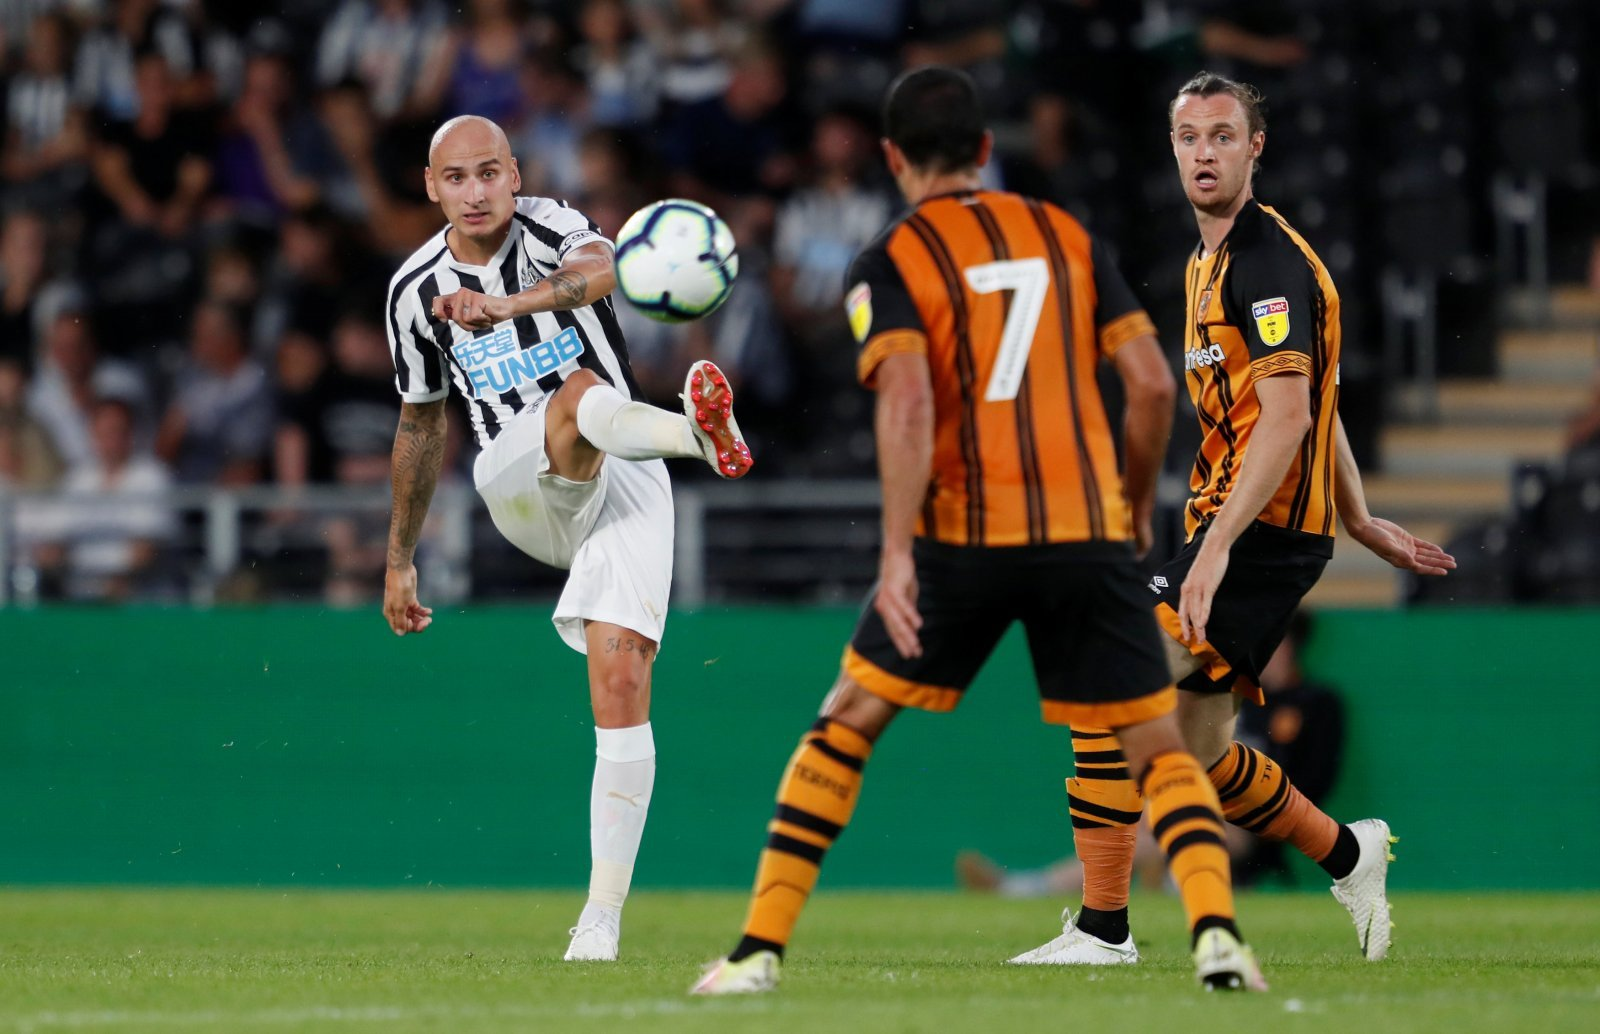 Pros and cons of Shelvey joining West Ham